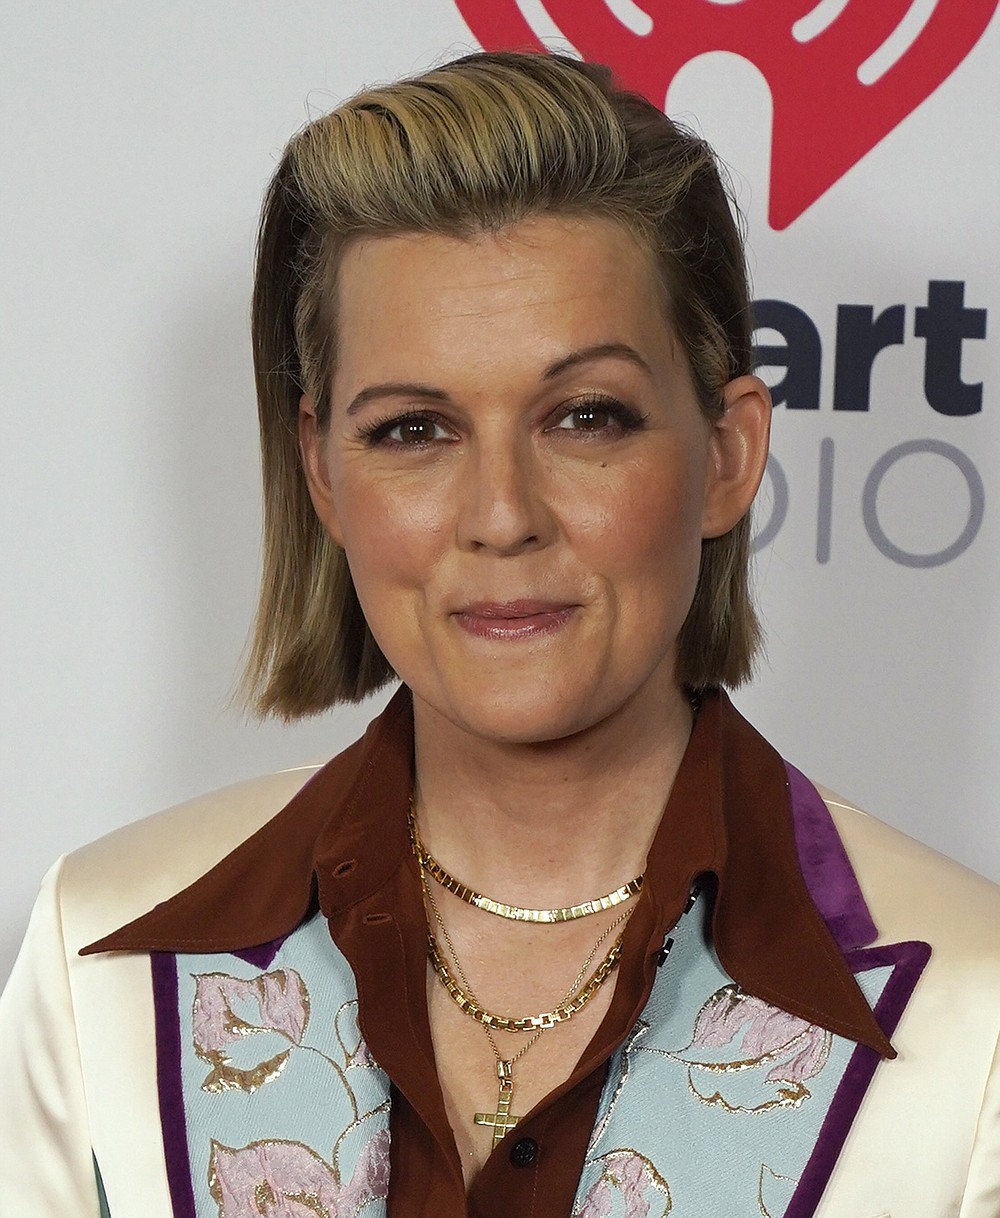 Brandi Carlile attends the iHeartRadio Music Awards at the Dolby Theatre on Thursday, May 27, 2021, in Los Angeles. (AP Photo/Chris Pizzello)